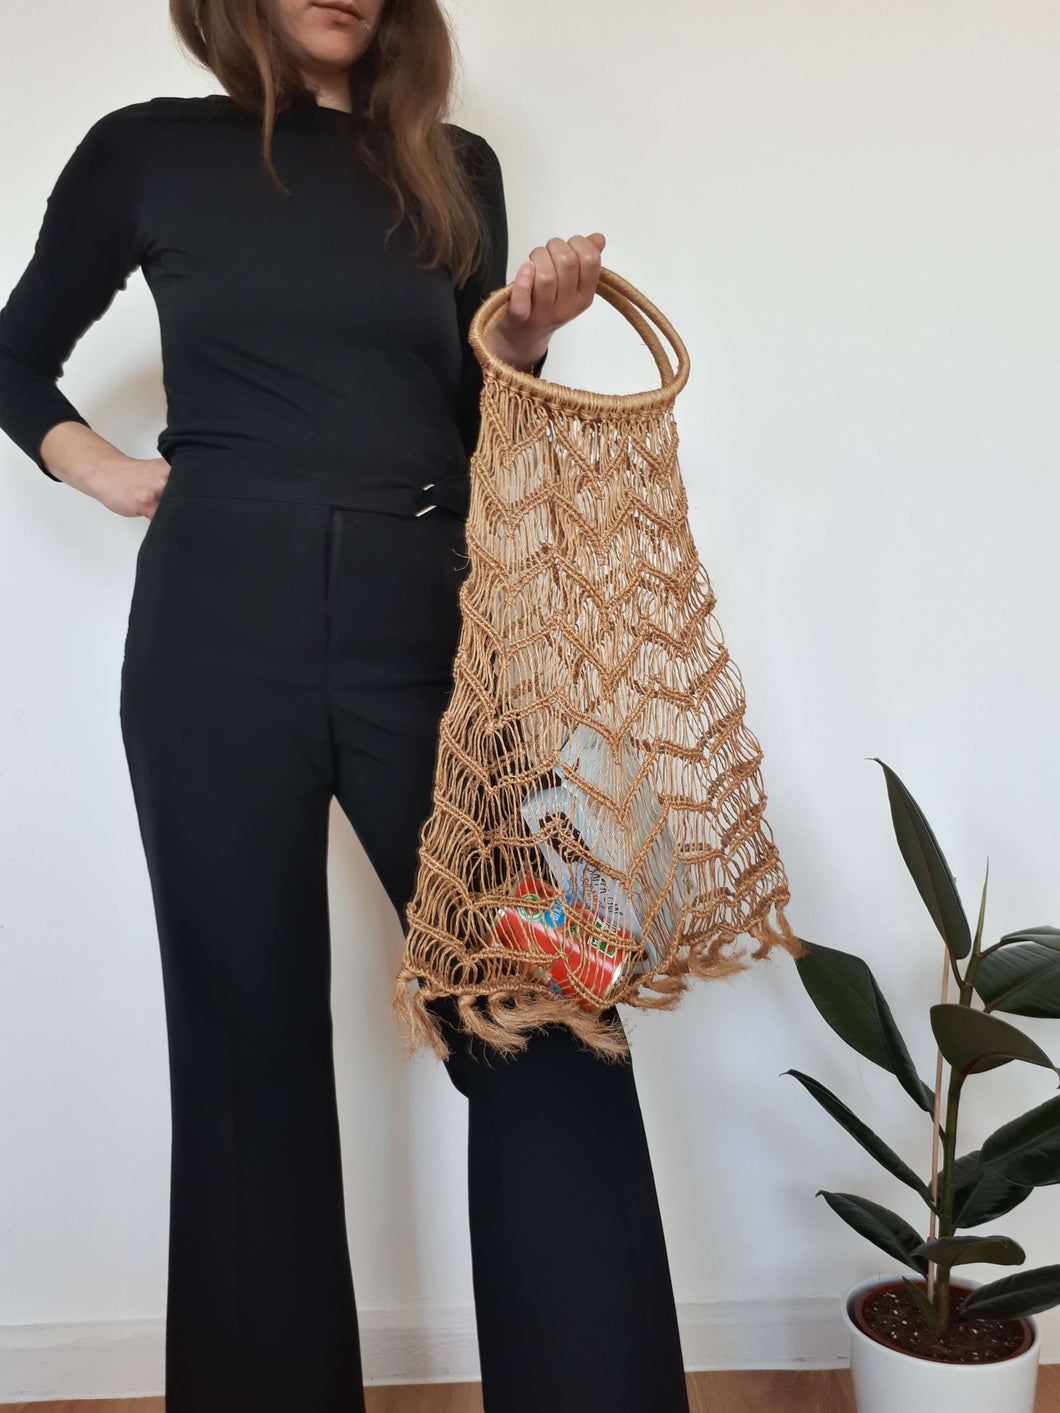 70s STRAW BAG | groceries bag:[Past out]:[vintage clothes]